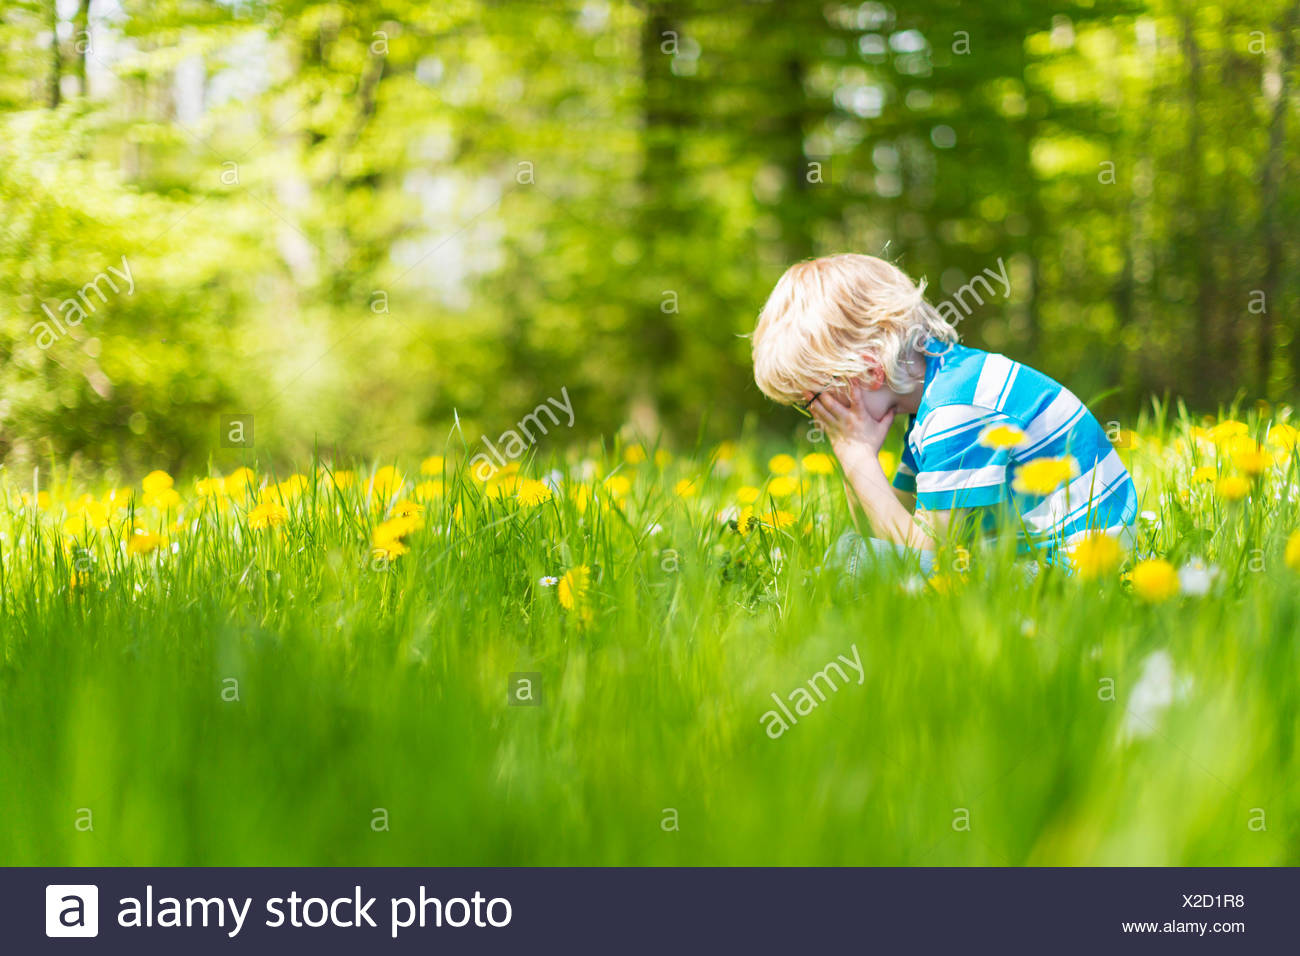 Boy sitting in field of tall grass - Stock Image